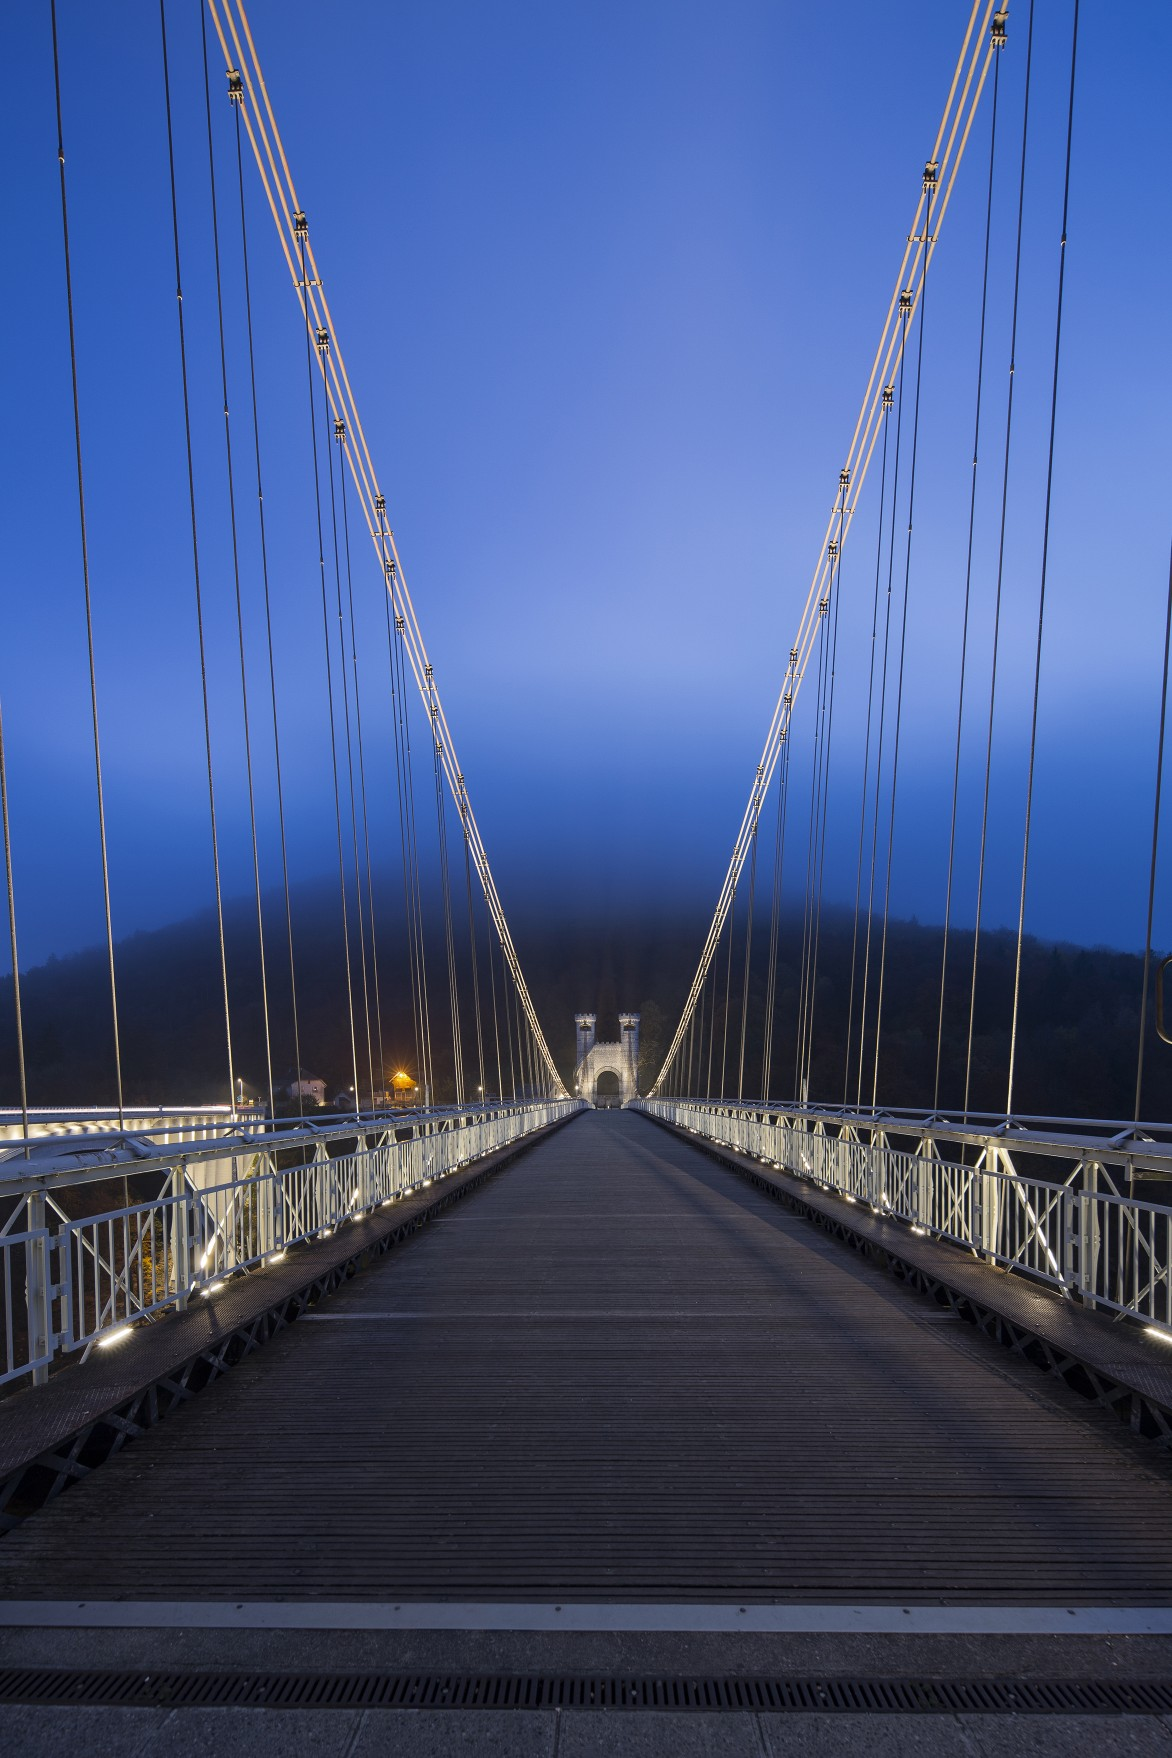 Installed along the length of the pedestrian bridge below the railing, the luminaires use 10x10 and 10x60 beam angles to illuminate the top of the bridge's cables.